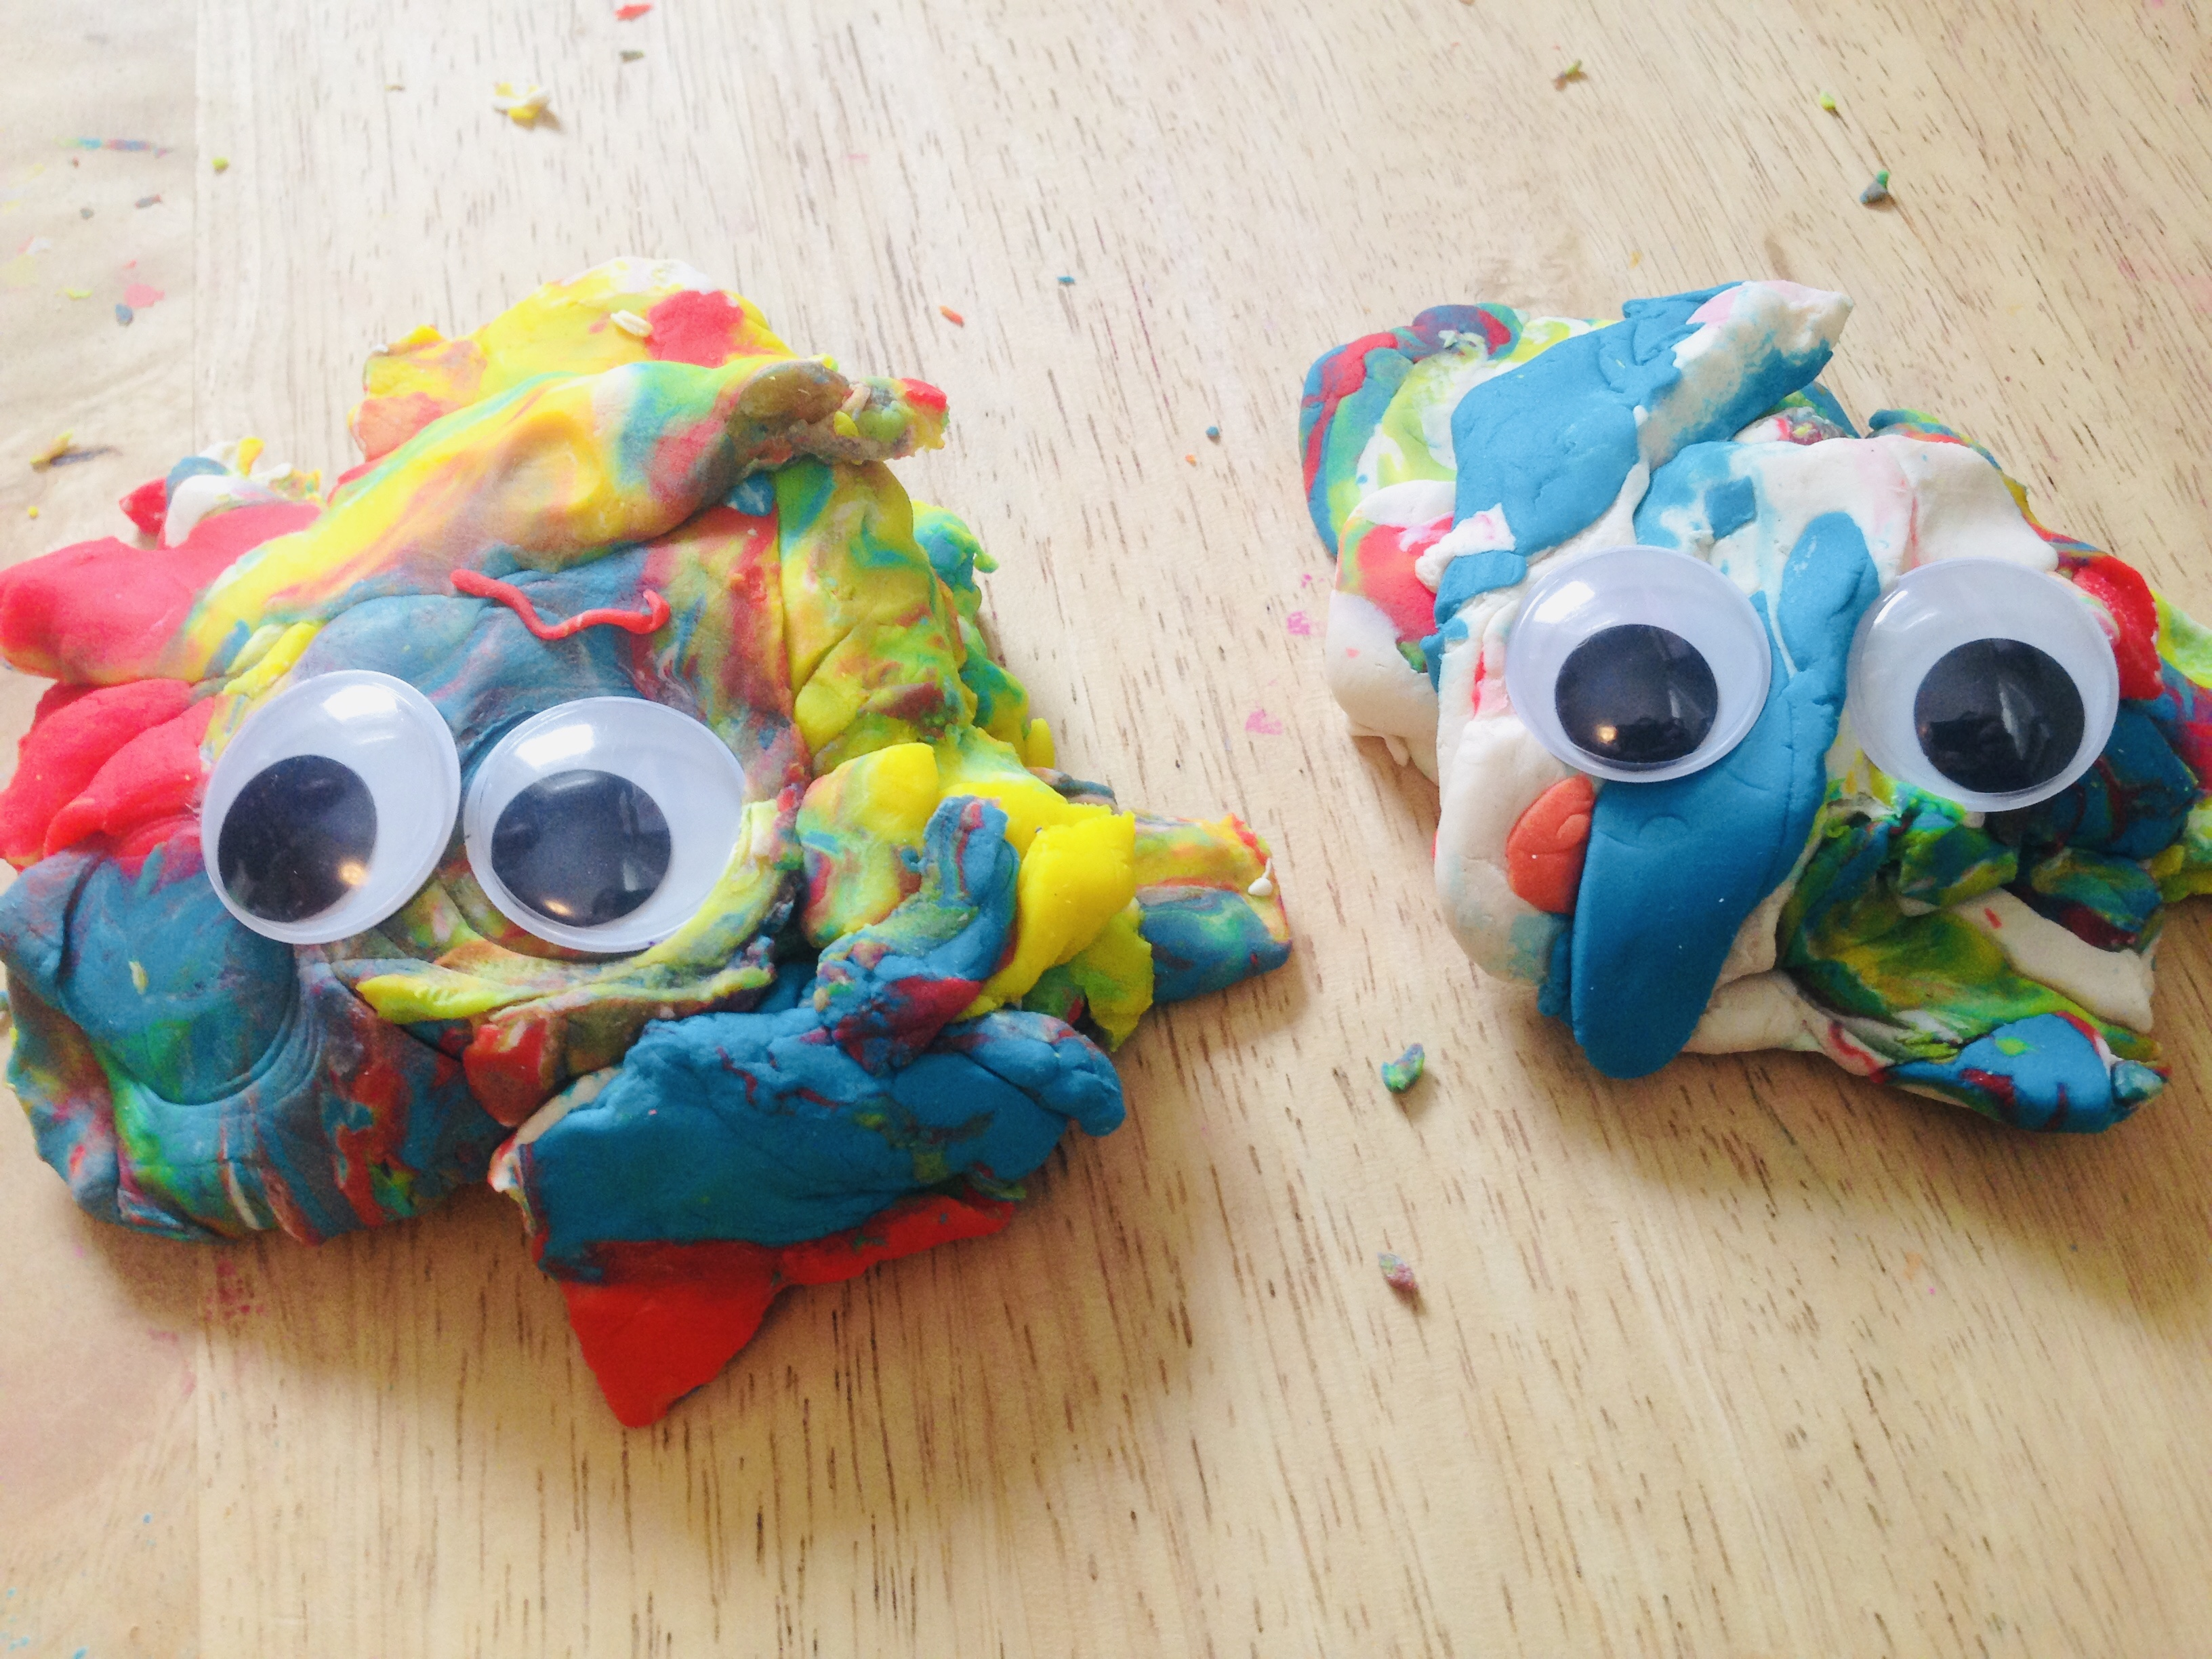 Play-Doh creatures